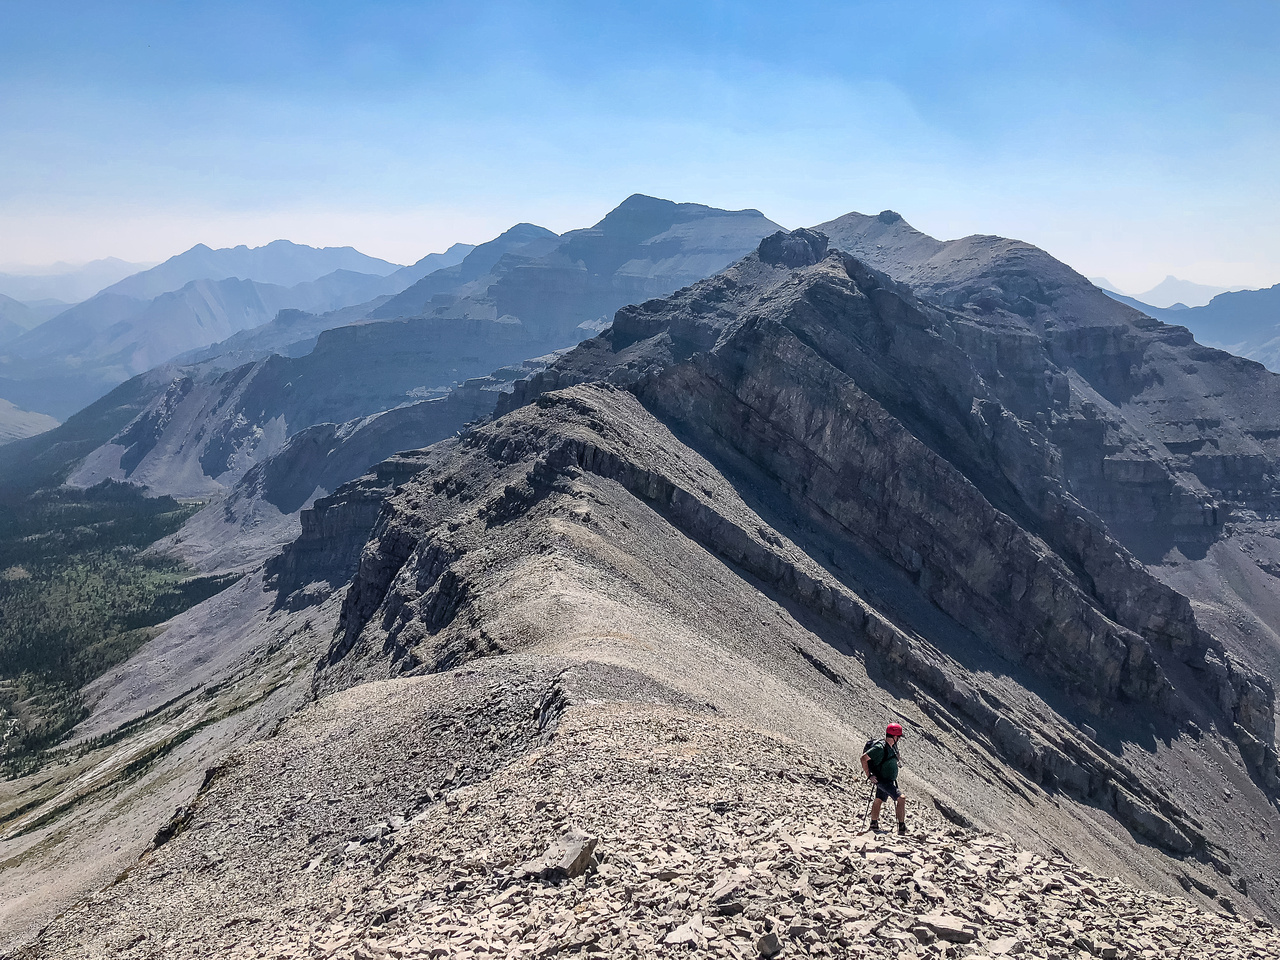 """Looking back at the interesting ridge traverse from Pyriform. If doing it the """"normal"""" way from this direction, the crux is encountered right away and is upclimbed instead of downclimbed like we did."""